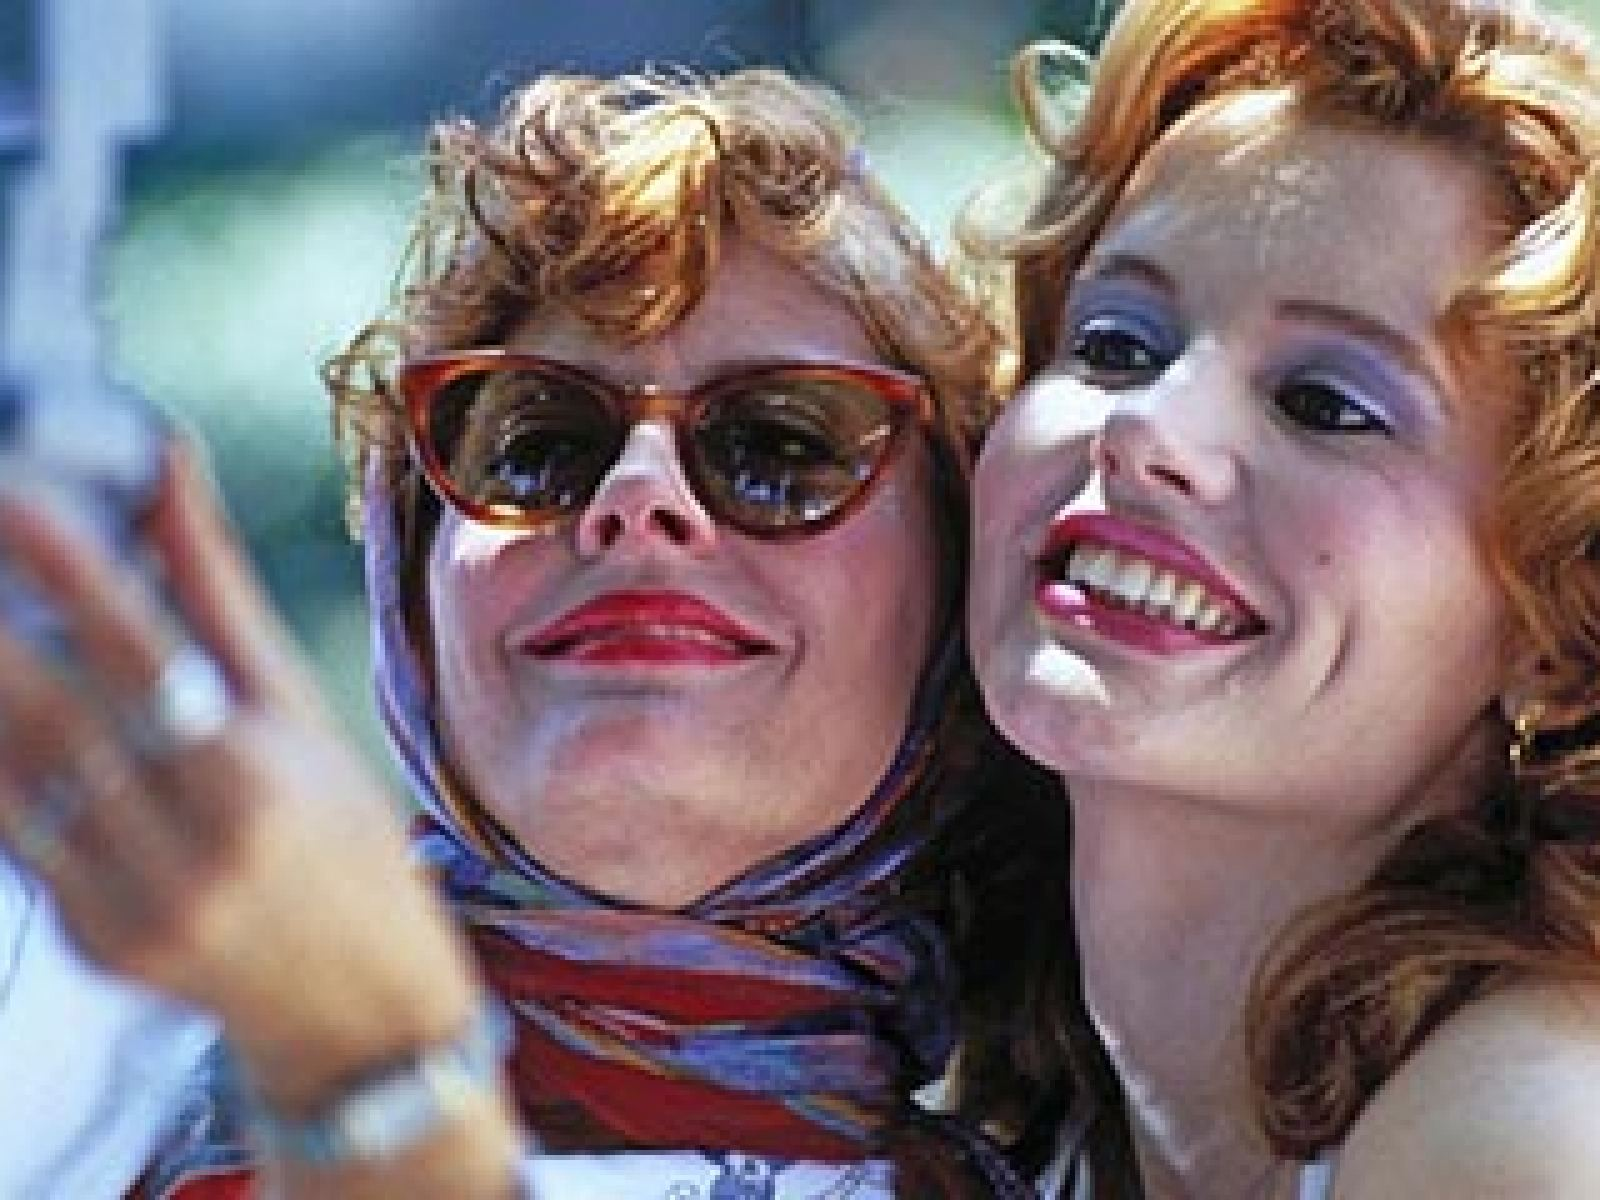 Main image for event titled THELMA & LOUISE / WORKING GIRL